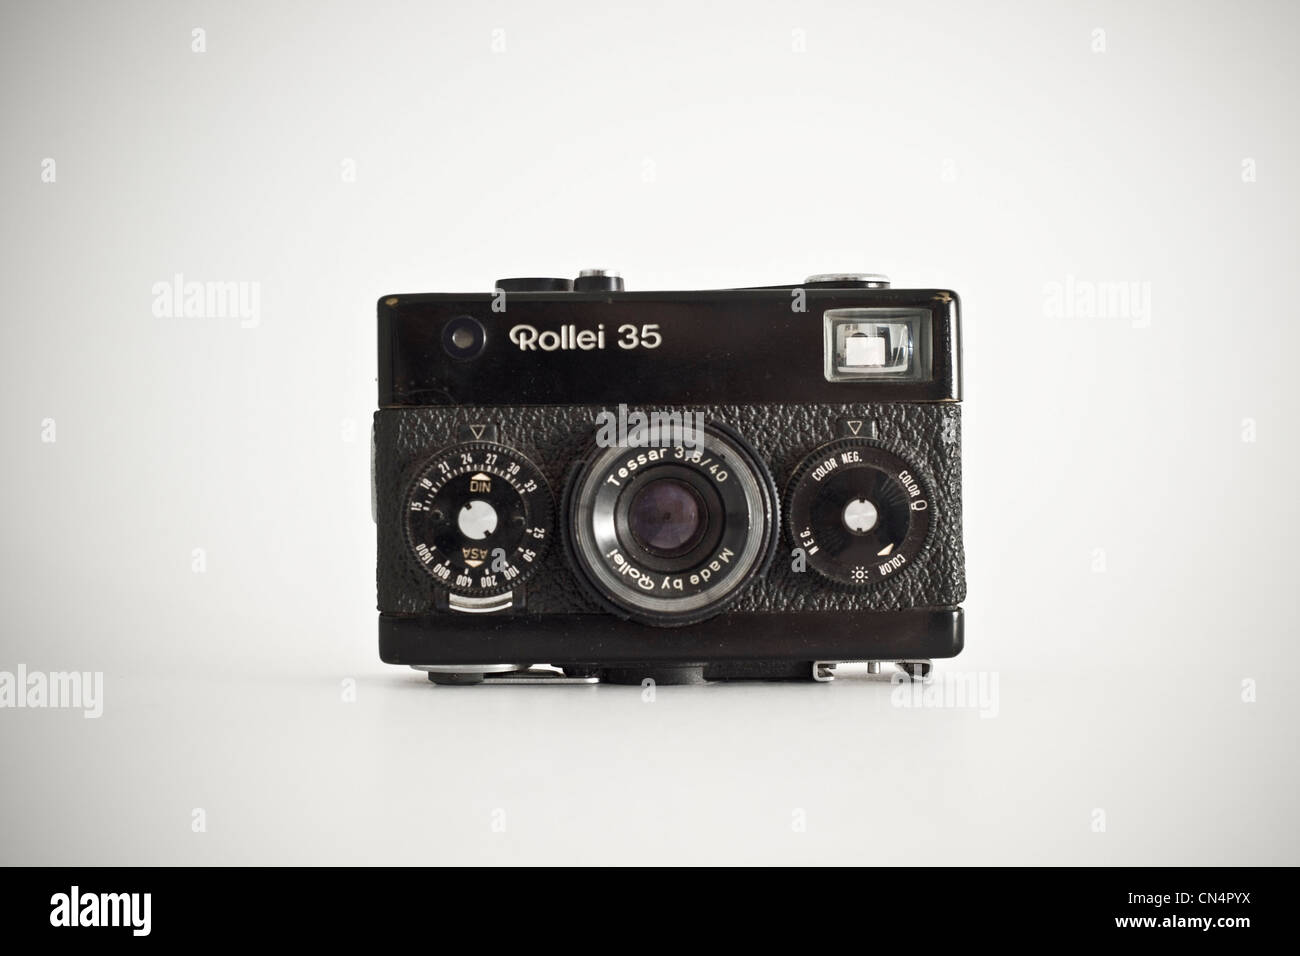 Classic old camera Rollei 35 Stock Photo